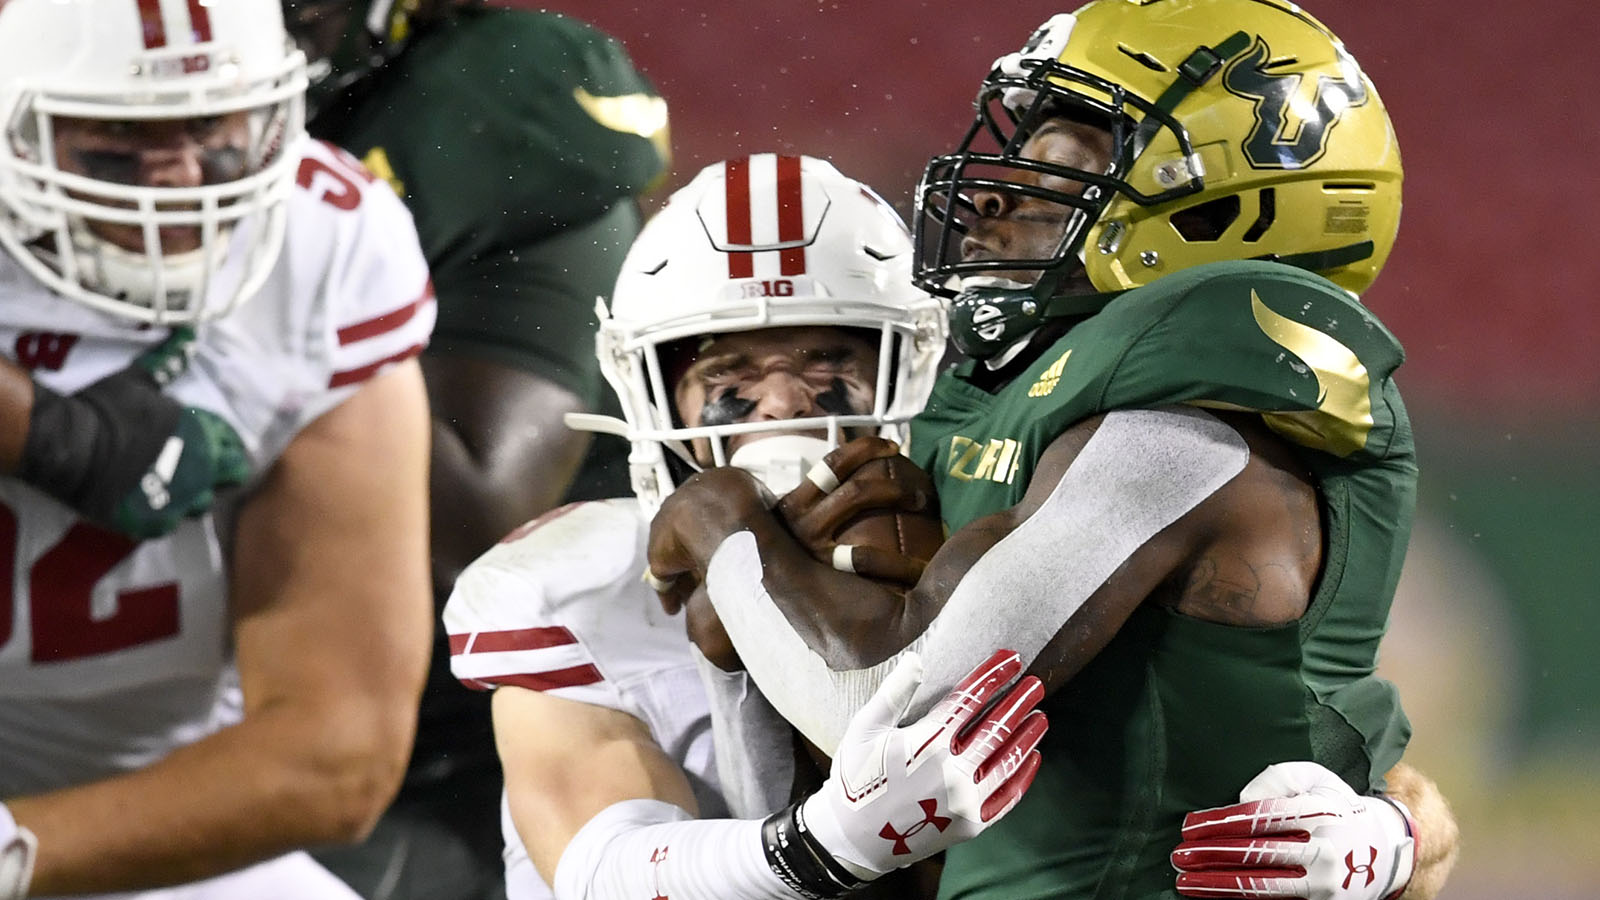 Aug 30, 2019; Tampa, FL, USA; South Florida Bulls running back Jordan Cronkrite (2) runs the ball as Wisconsin Badgers safety Scott Nelson (9) defends during the second half at Raymond James Stadium. Mandatory Credit: Douglas DeFelice-USA TODAY Sports